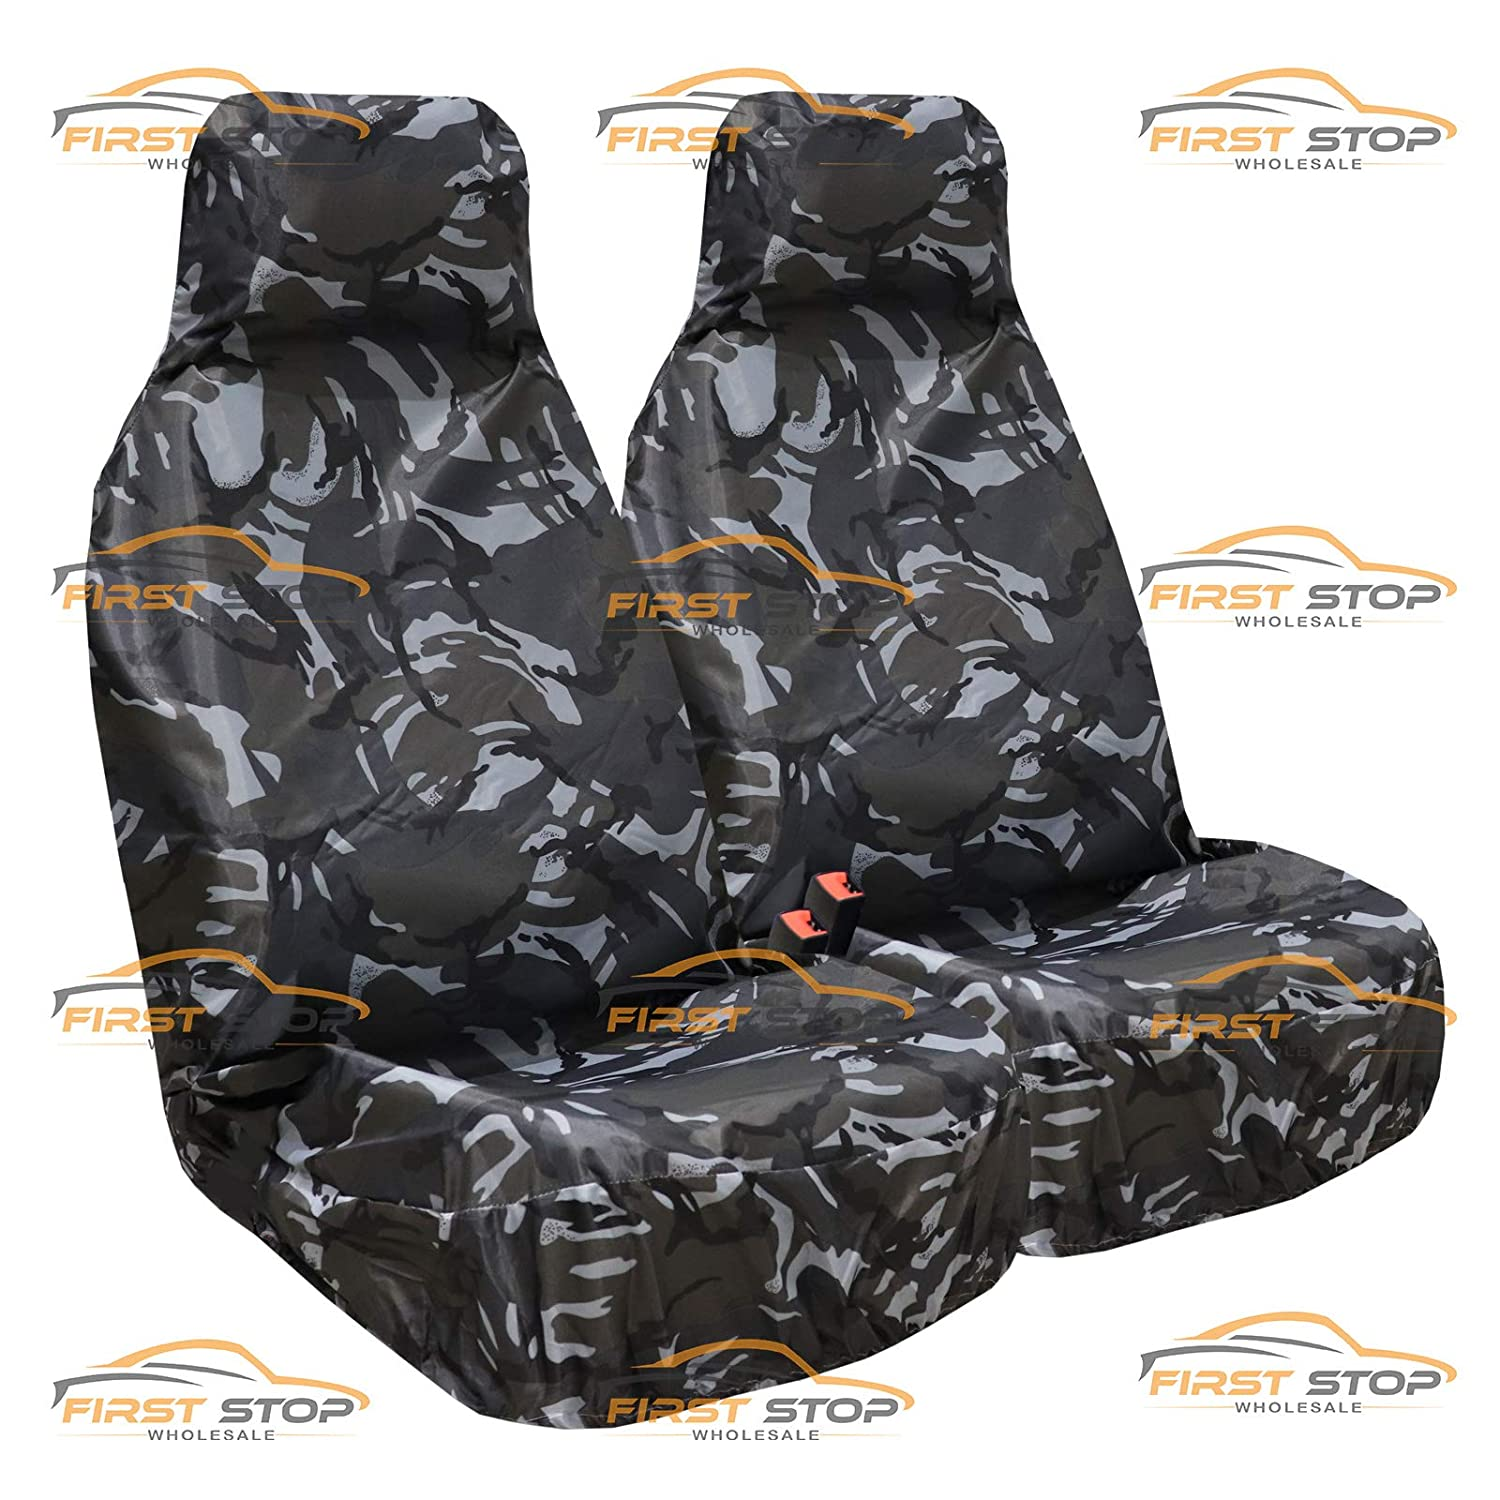 ASK Mirage FSW Heavy Duty Waterproof Car Front Green Camo Seat Covers 1+1 Green Camo HD1+1 Fits: 3000GT GTO Lancer Colt Grandis FTO Outlander Shogun Space Runner ASX Galant L200 Challenger